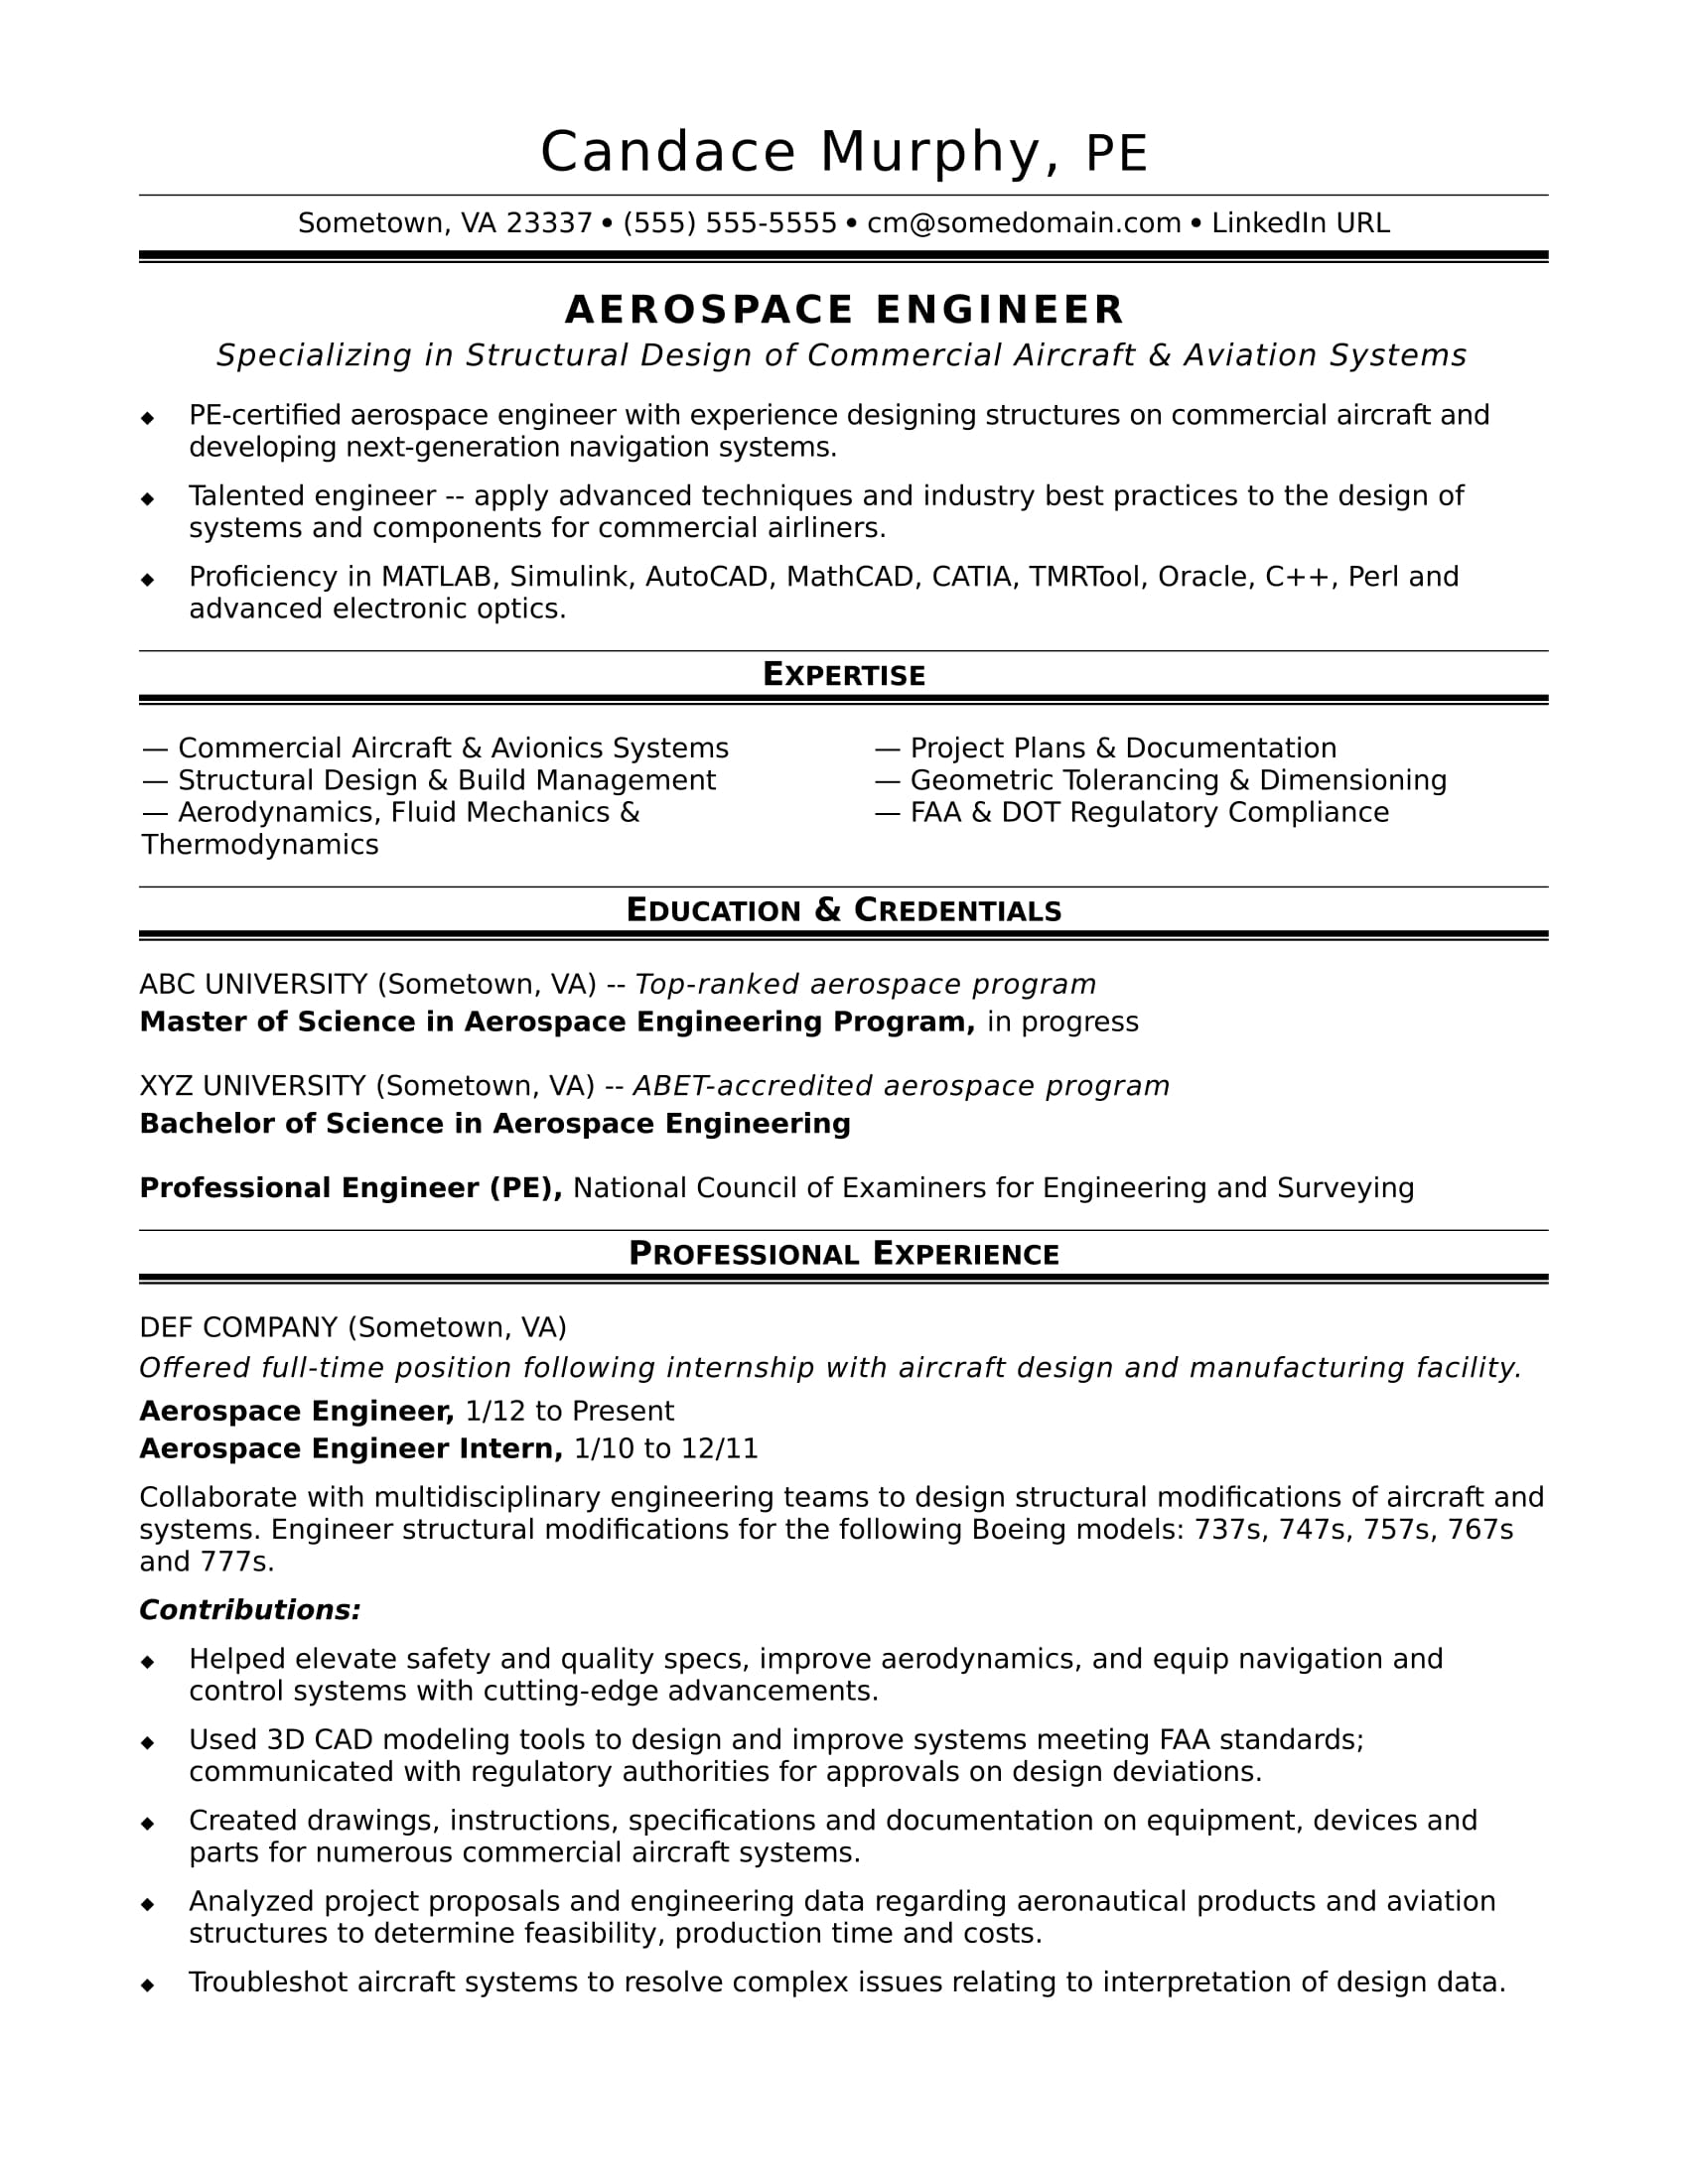 sample resume for midlevel aerospace engineer monster best format aviation redhat logo Resume Best Resume Format For Aviation